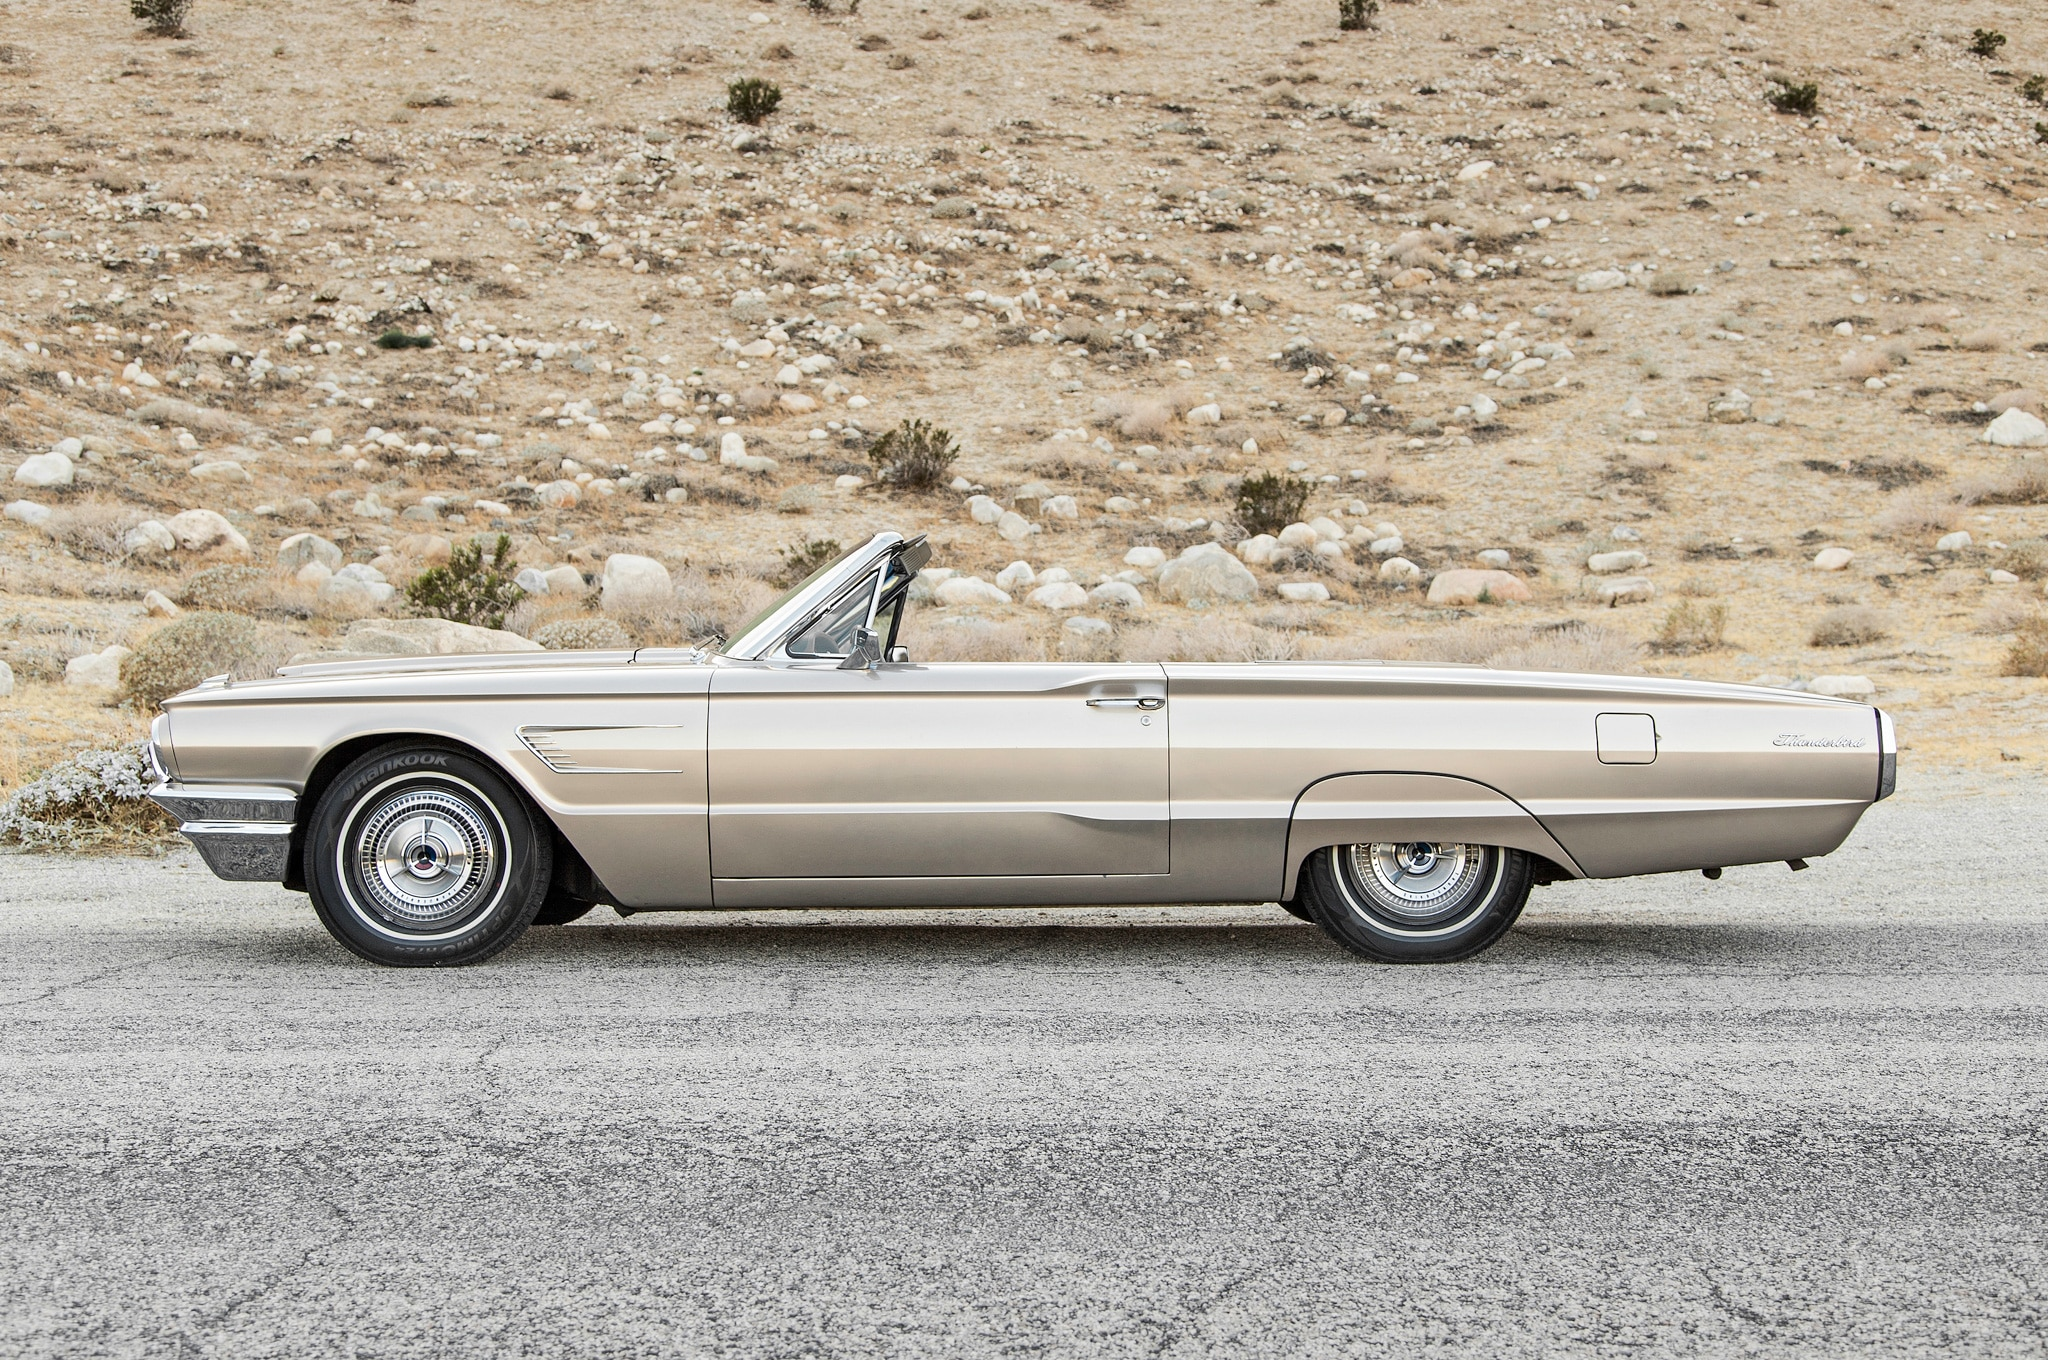 2015 Ford Thunderbird >> Collectible Classic: 1964-1966 Ford Thunderbird Convertible